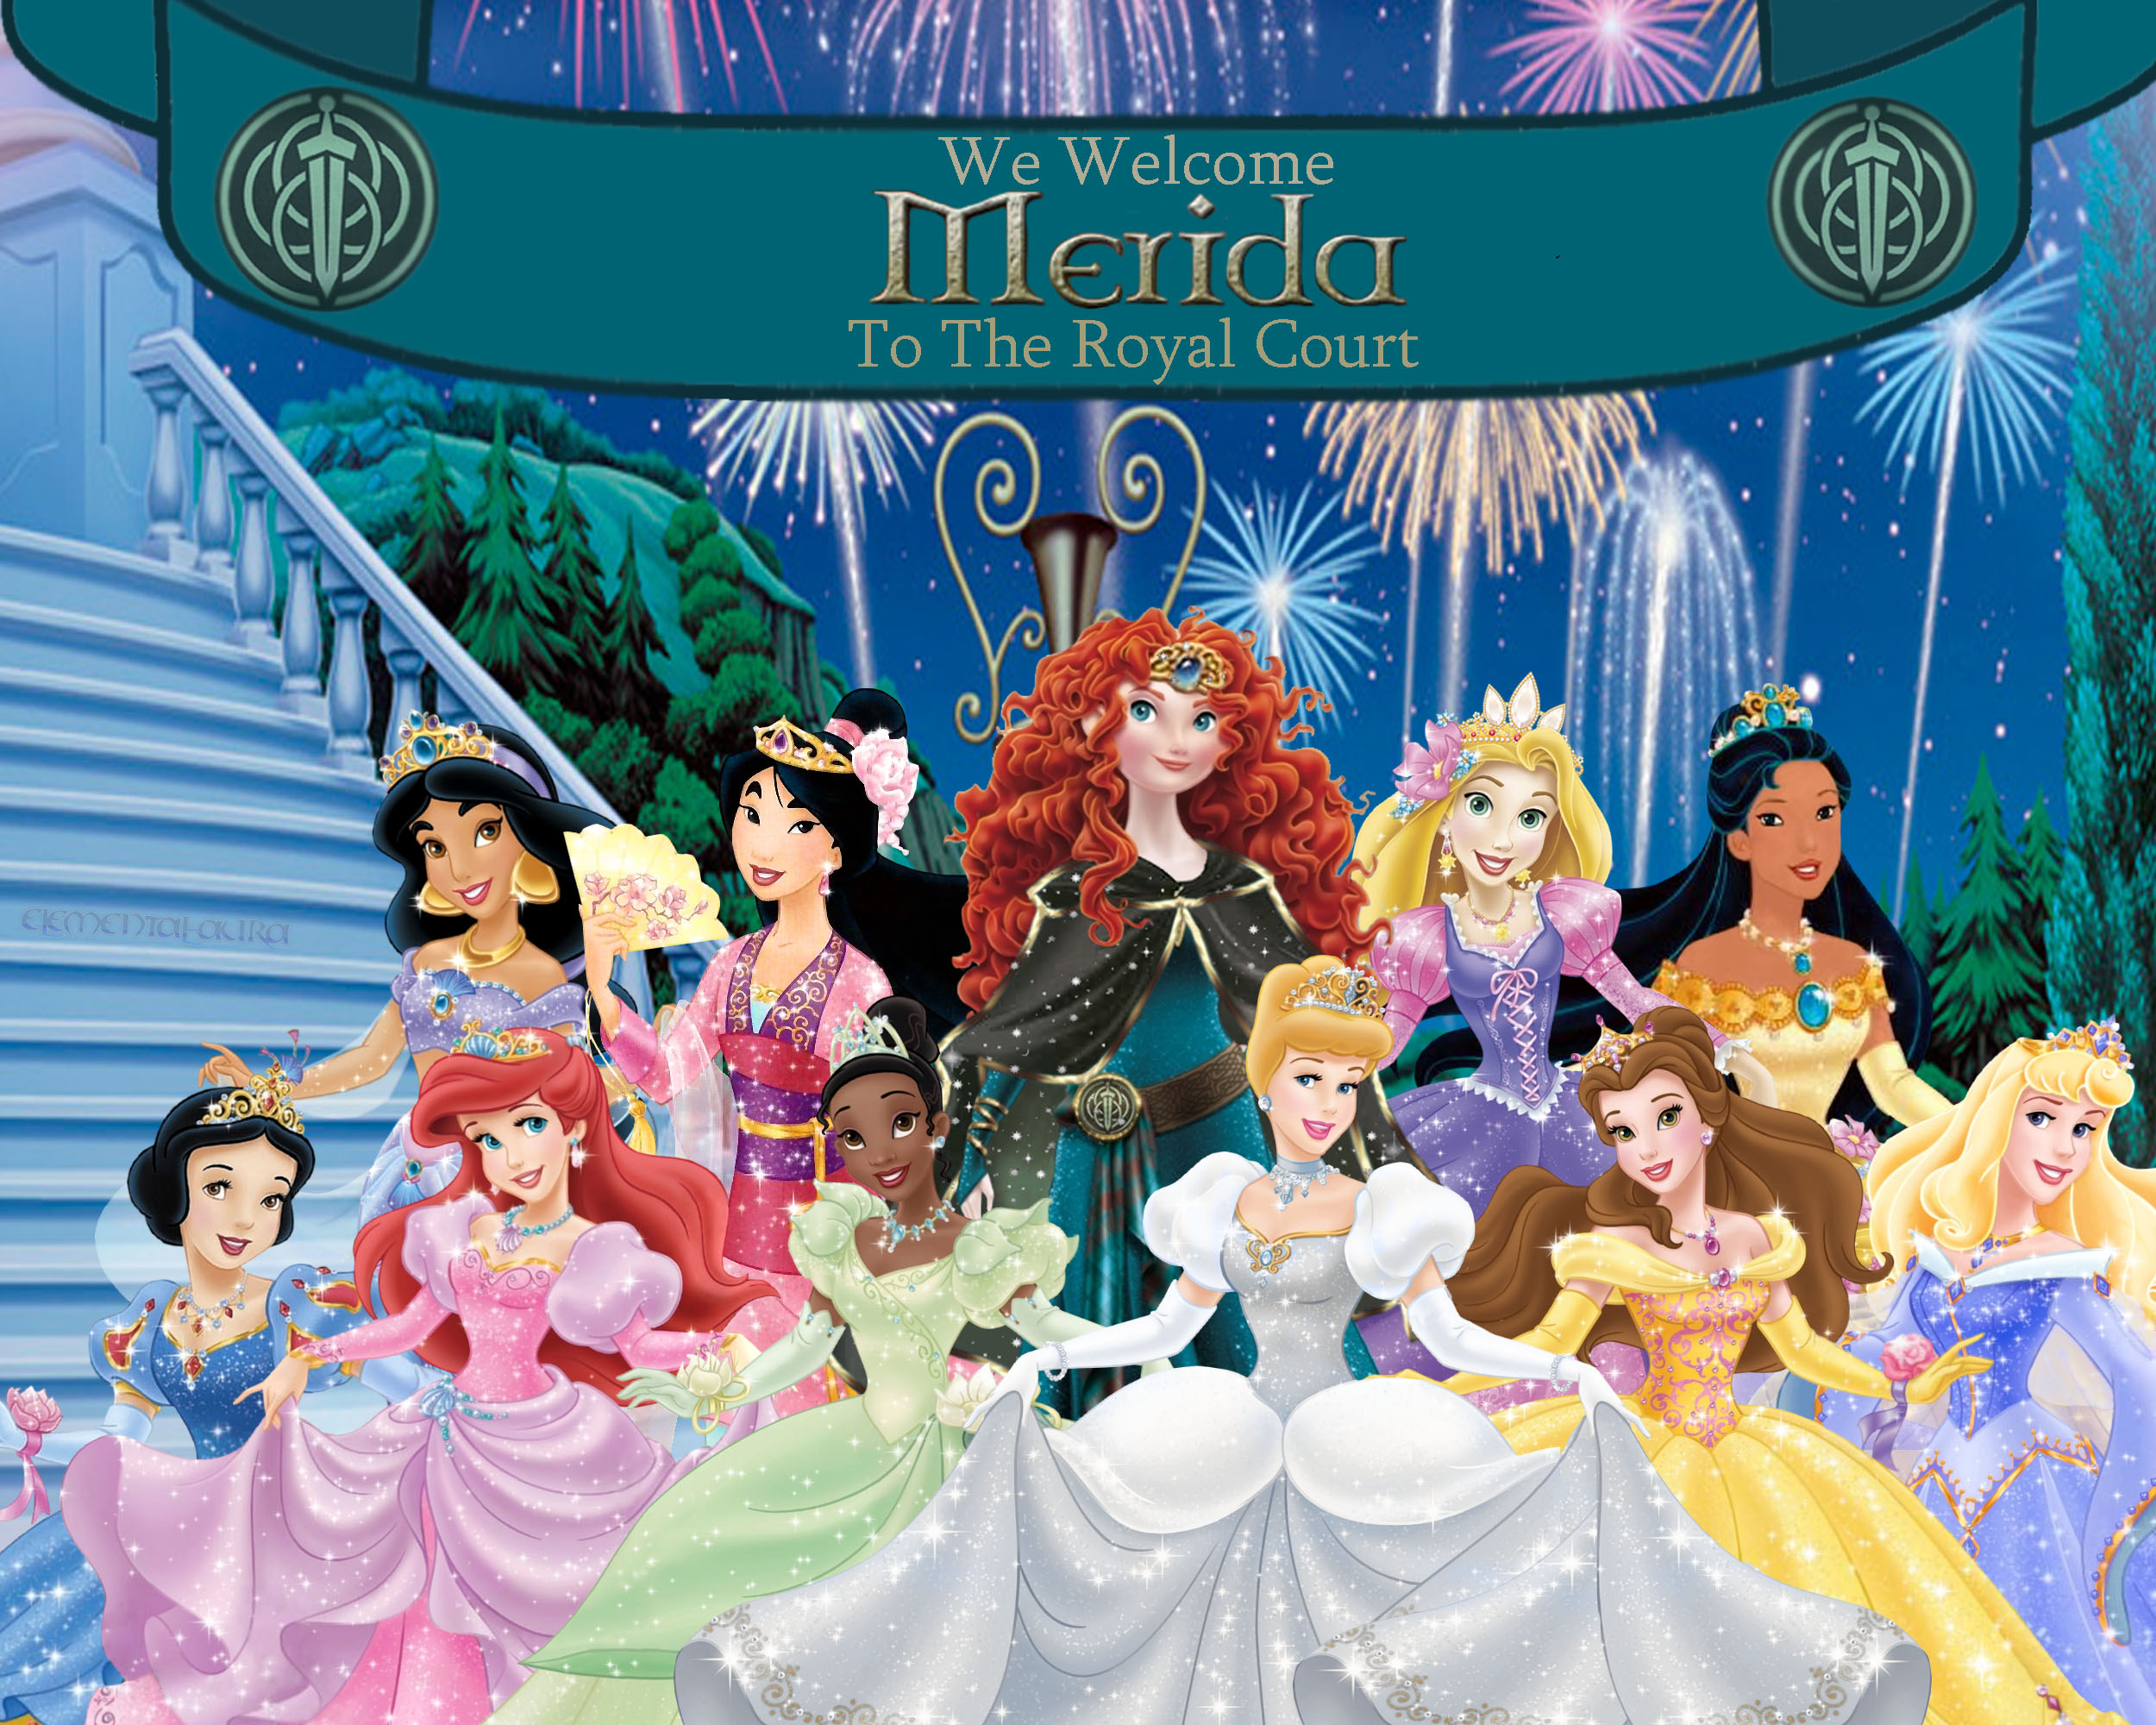 Merida joins the Royal Court